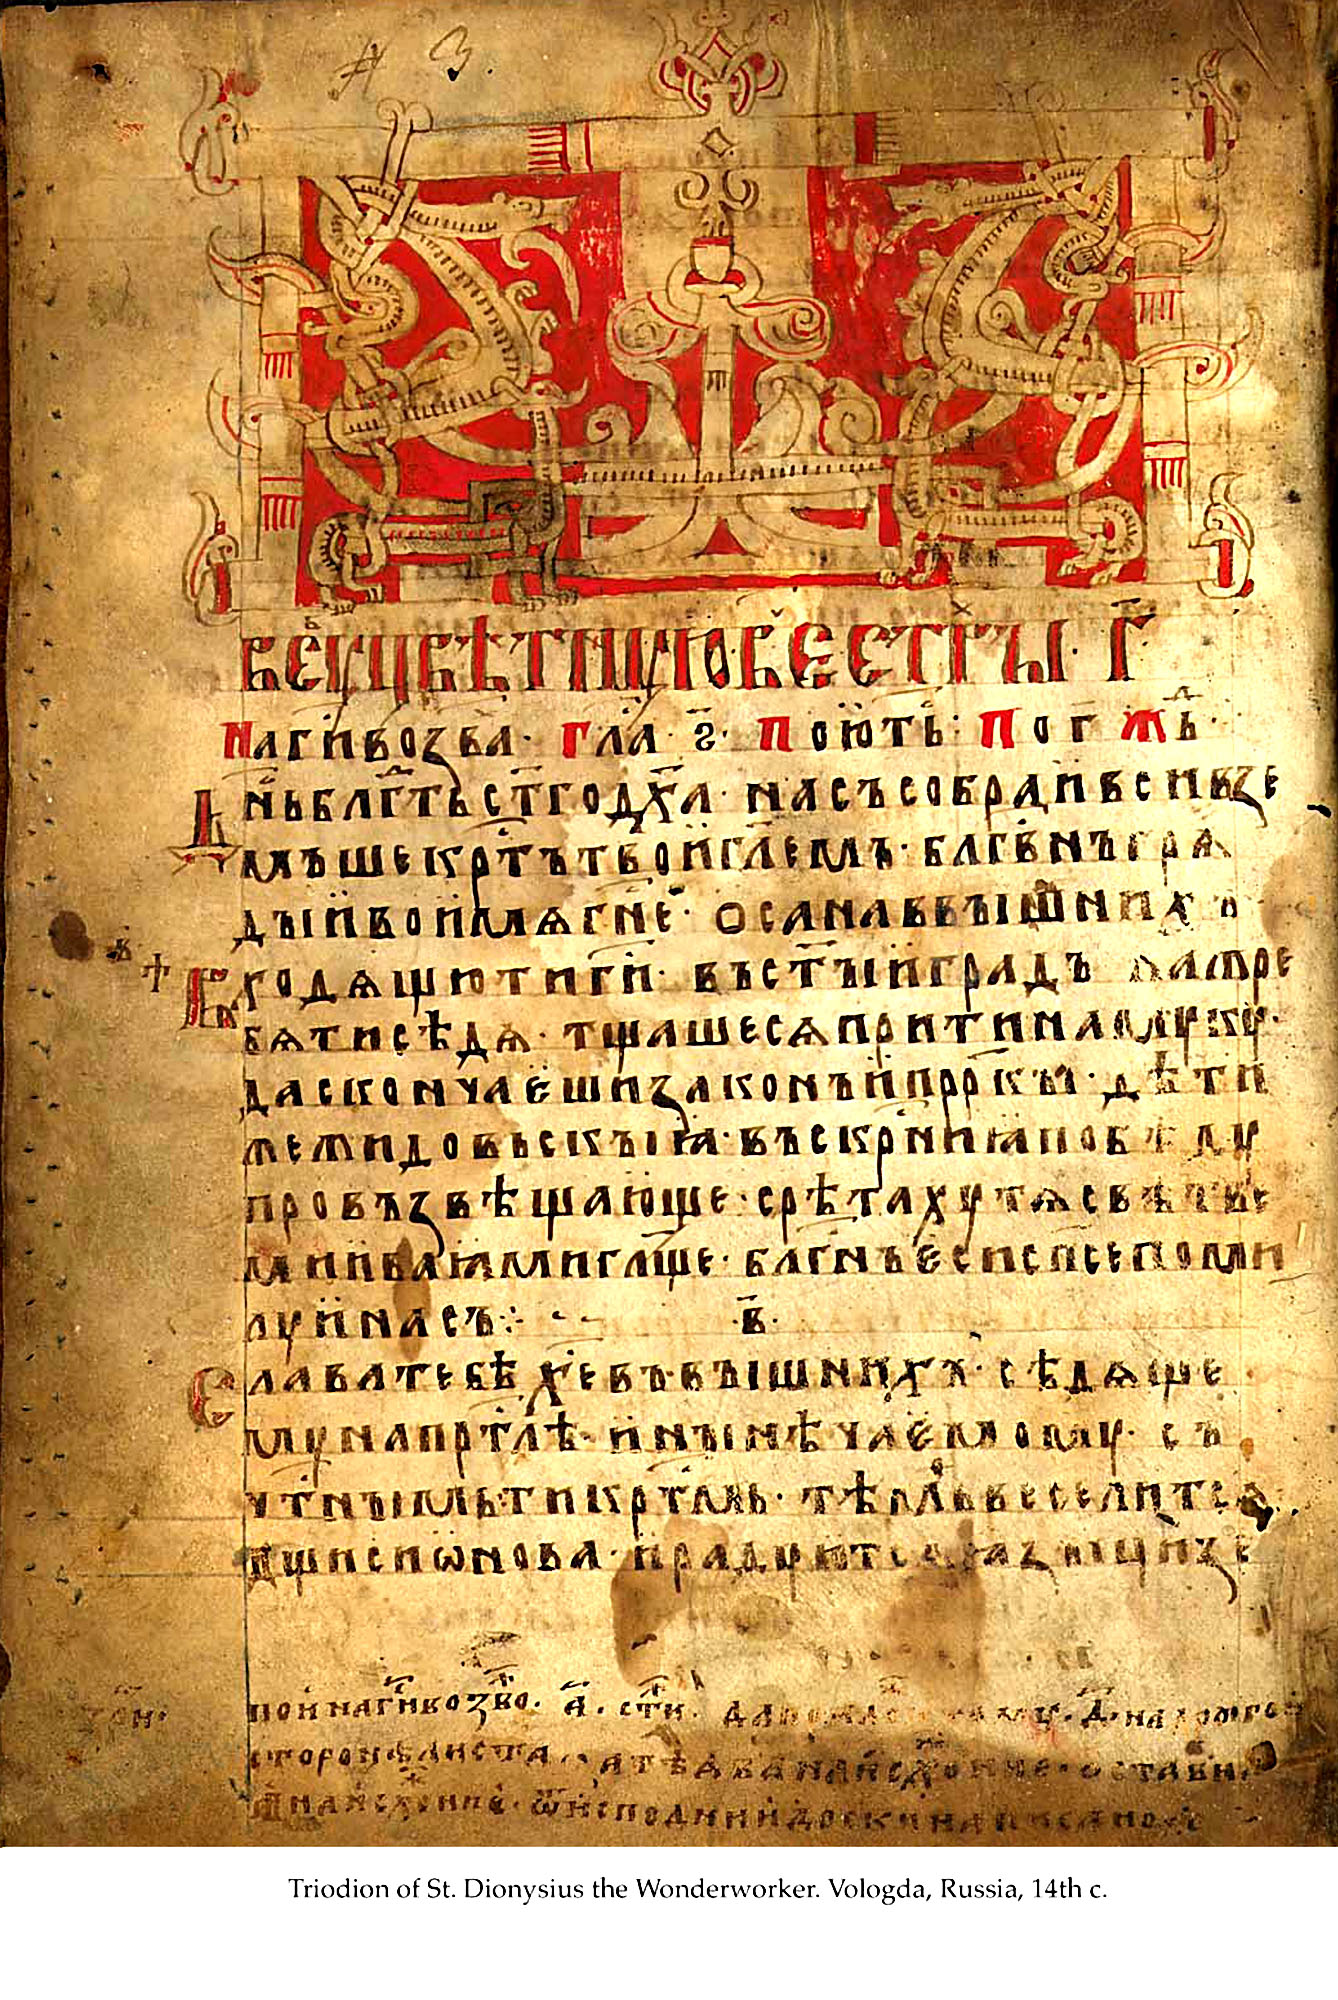 Russian palaeography by lev v cherepnin printed in moscow 1956